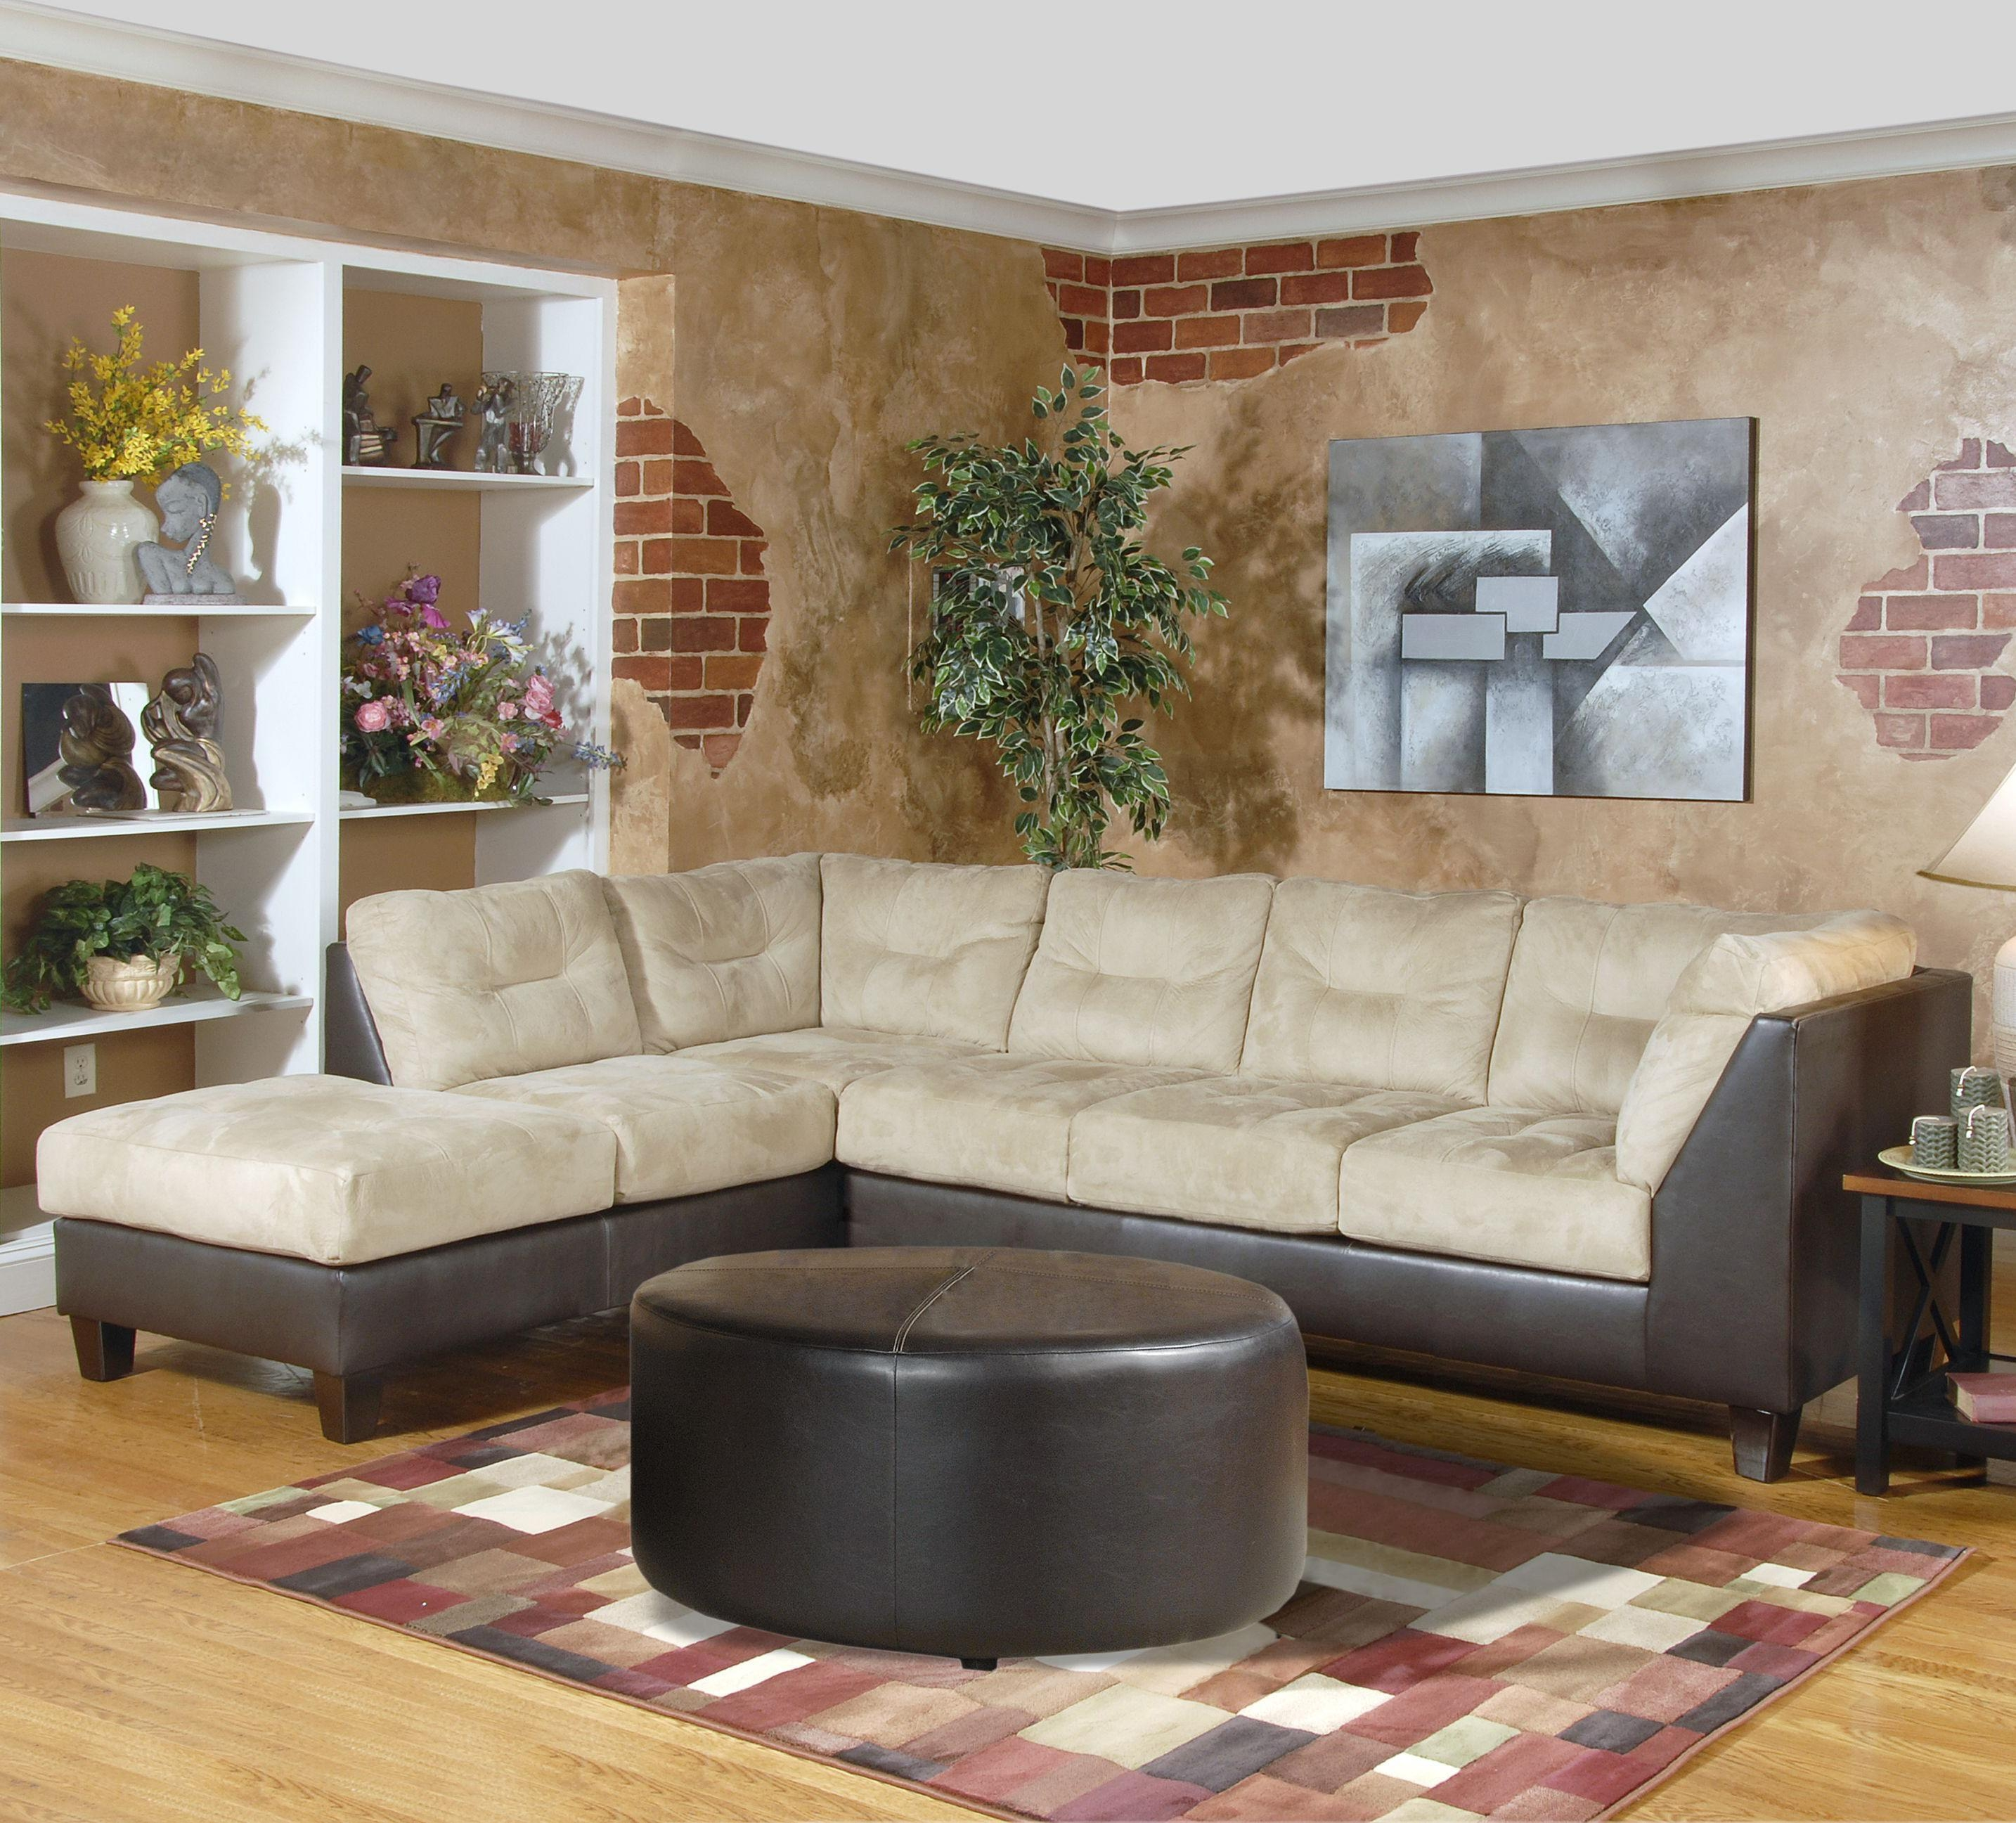 Serta Leather Sectional Sofa | Tehranmix Decoration Pertaining To Serta Sectional (Image 14 of 20)